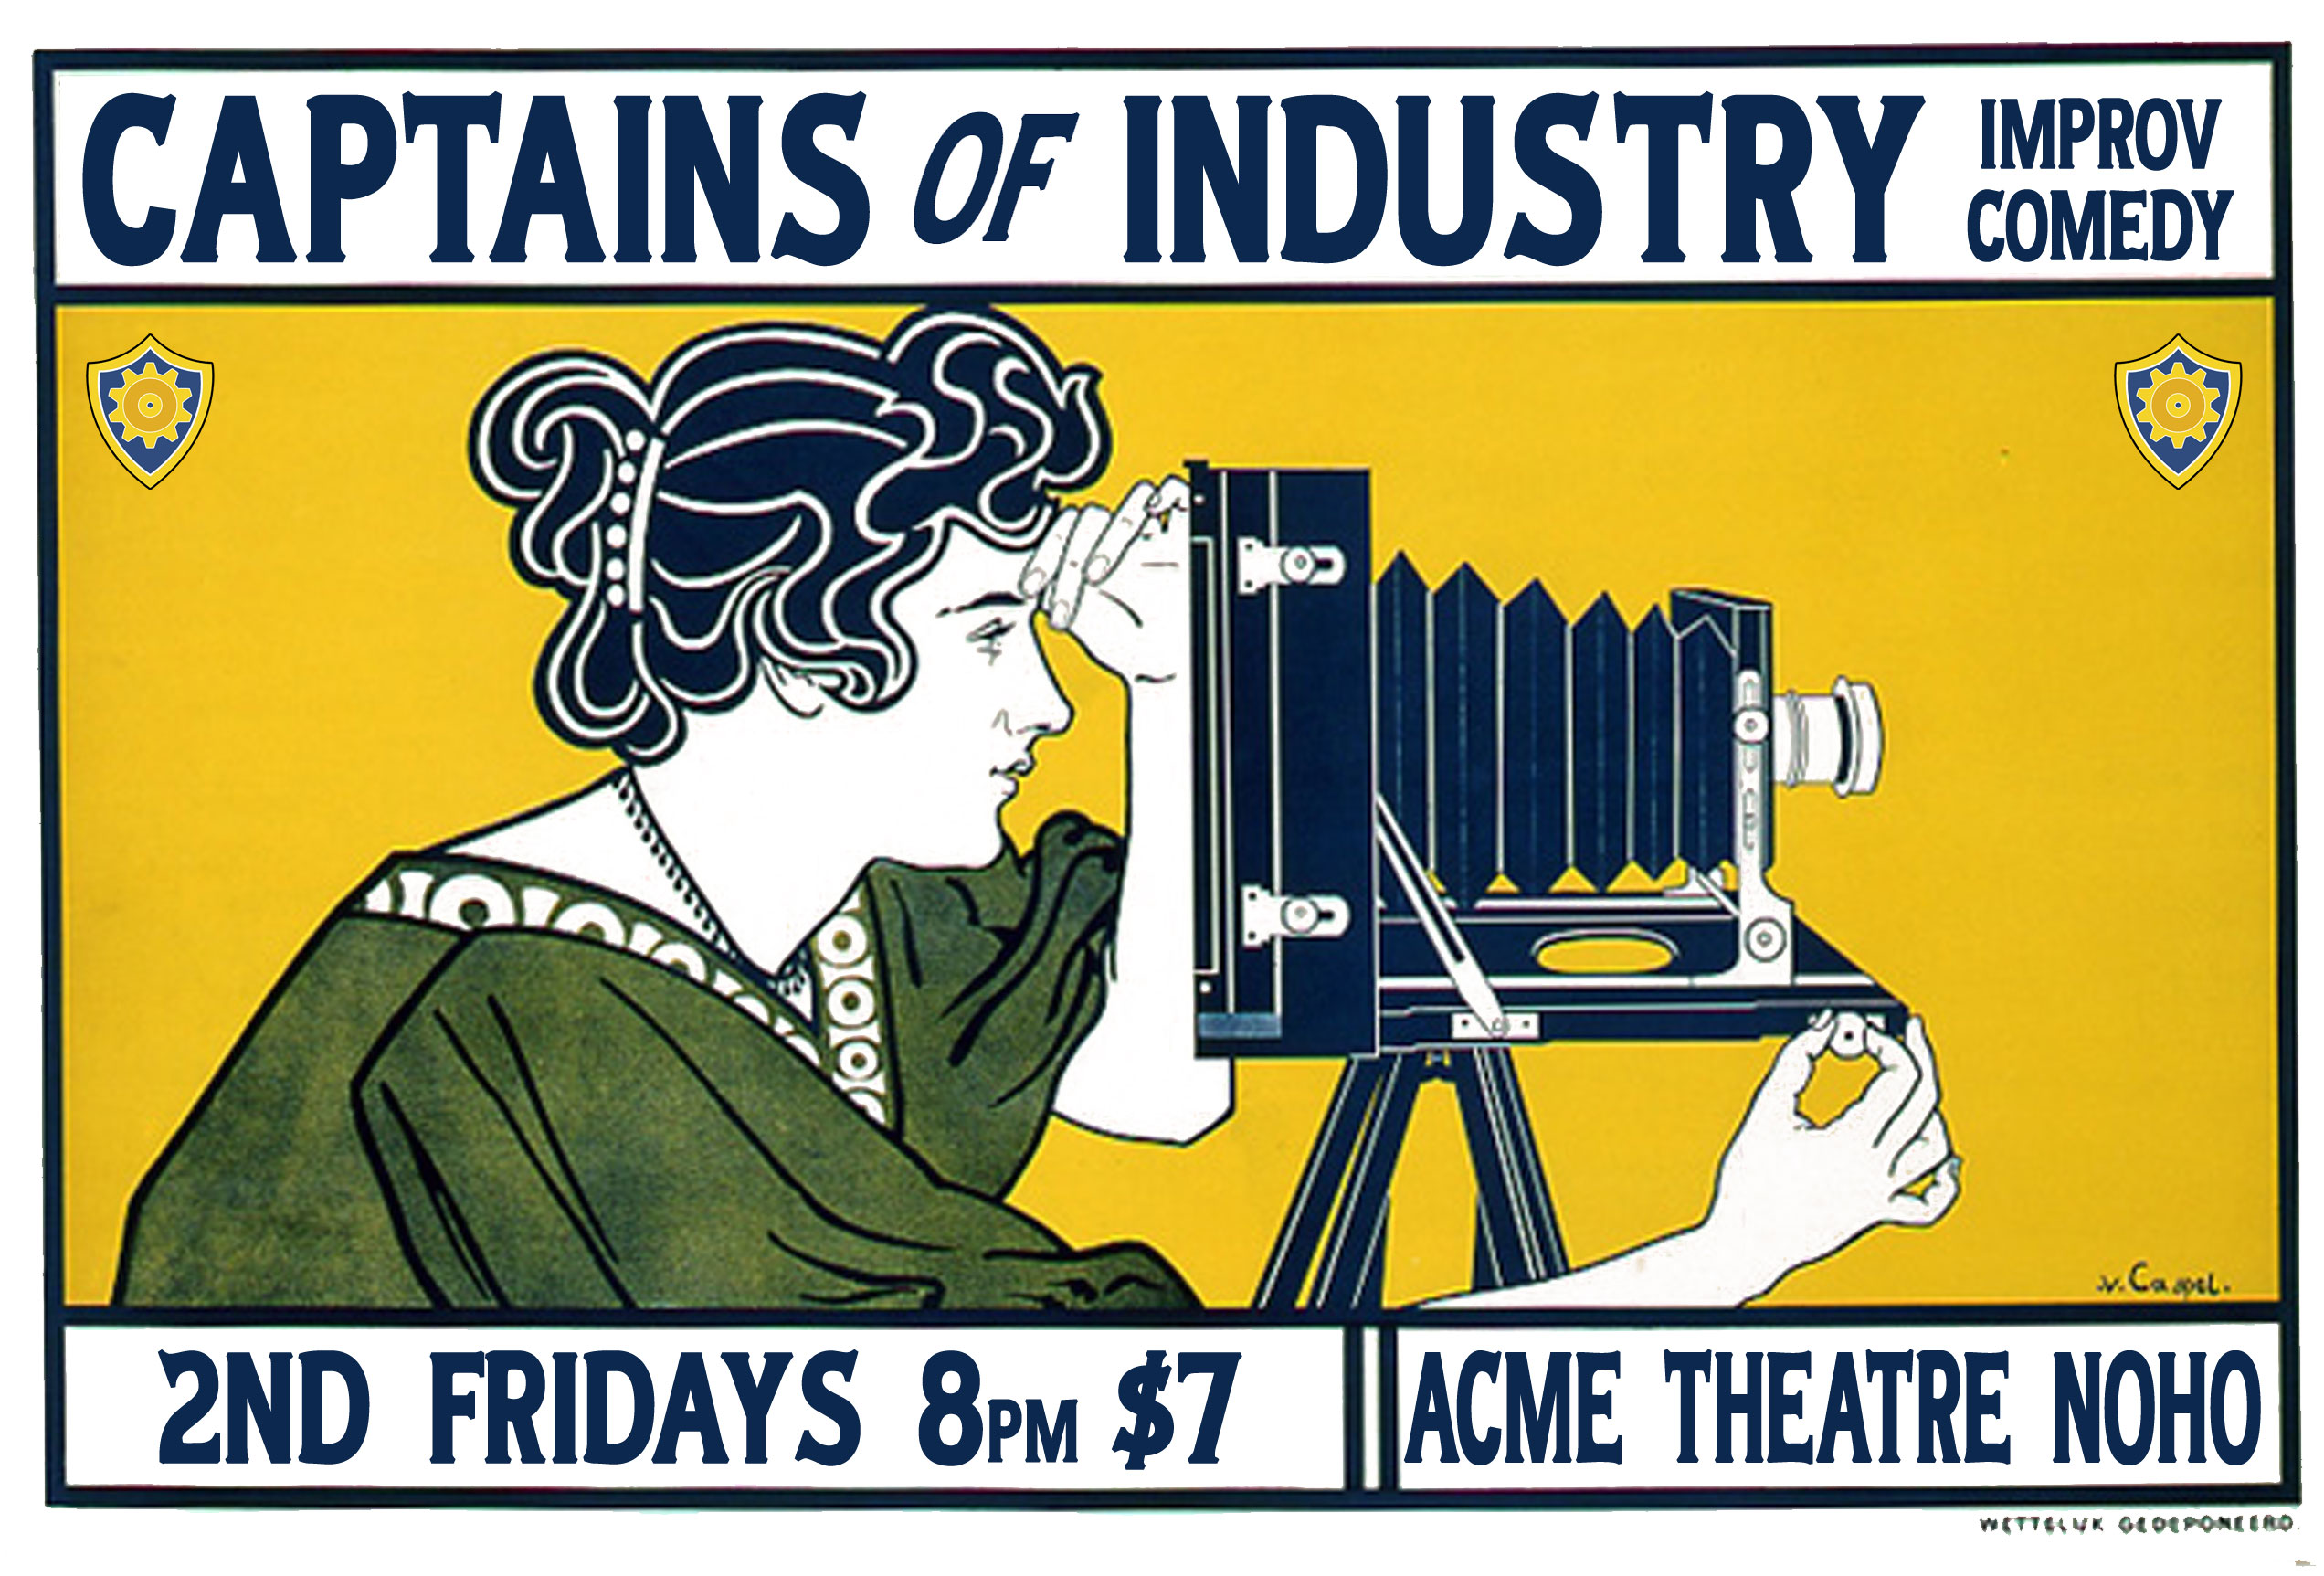 March 10th Captains of Industry Show Coming Up!